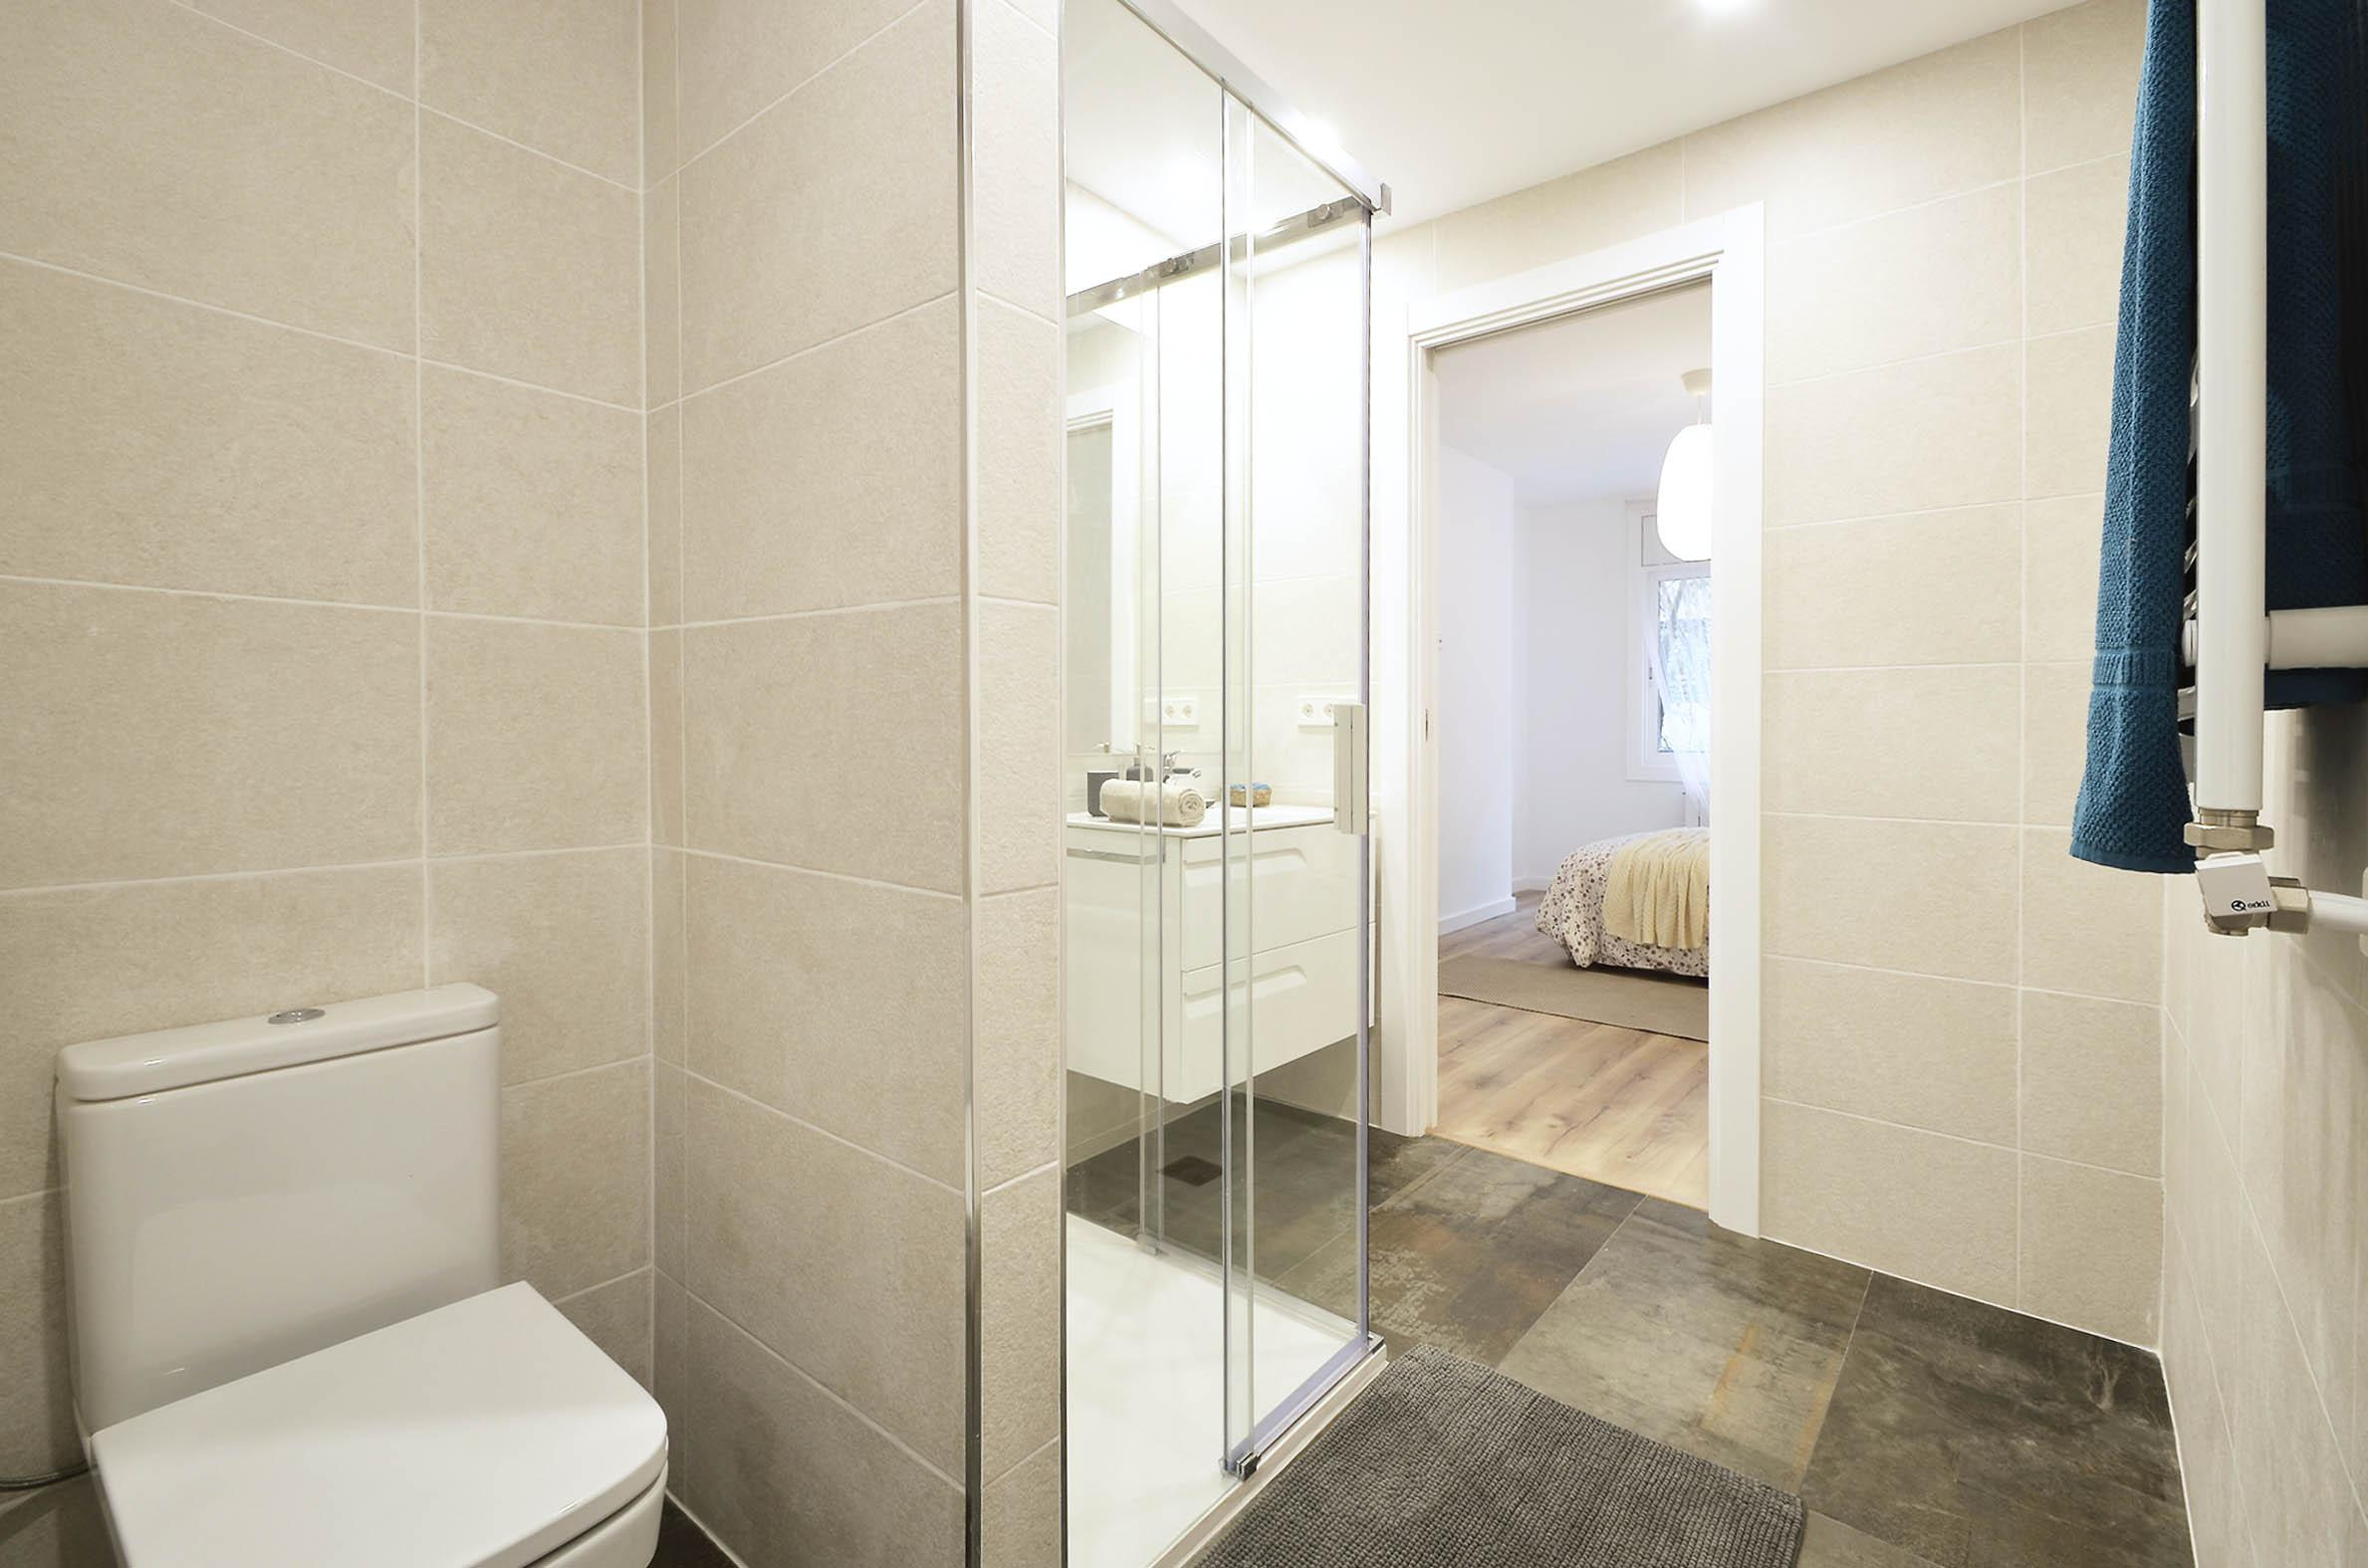 245687 Flat for sale in Eixample, Fort Pienc 15